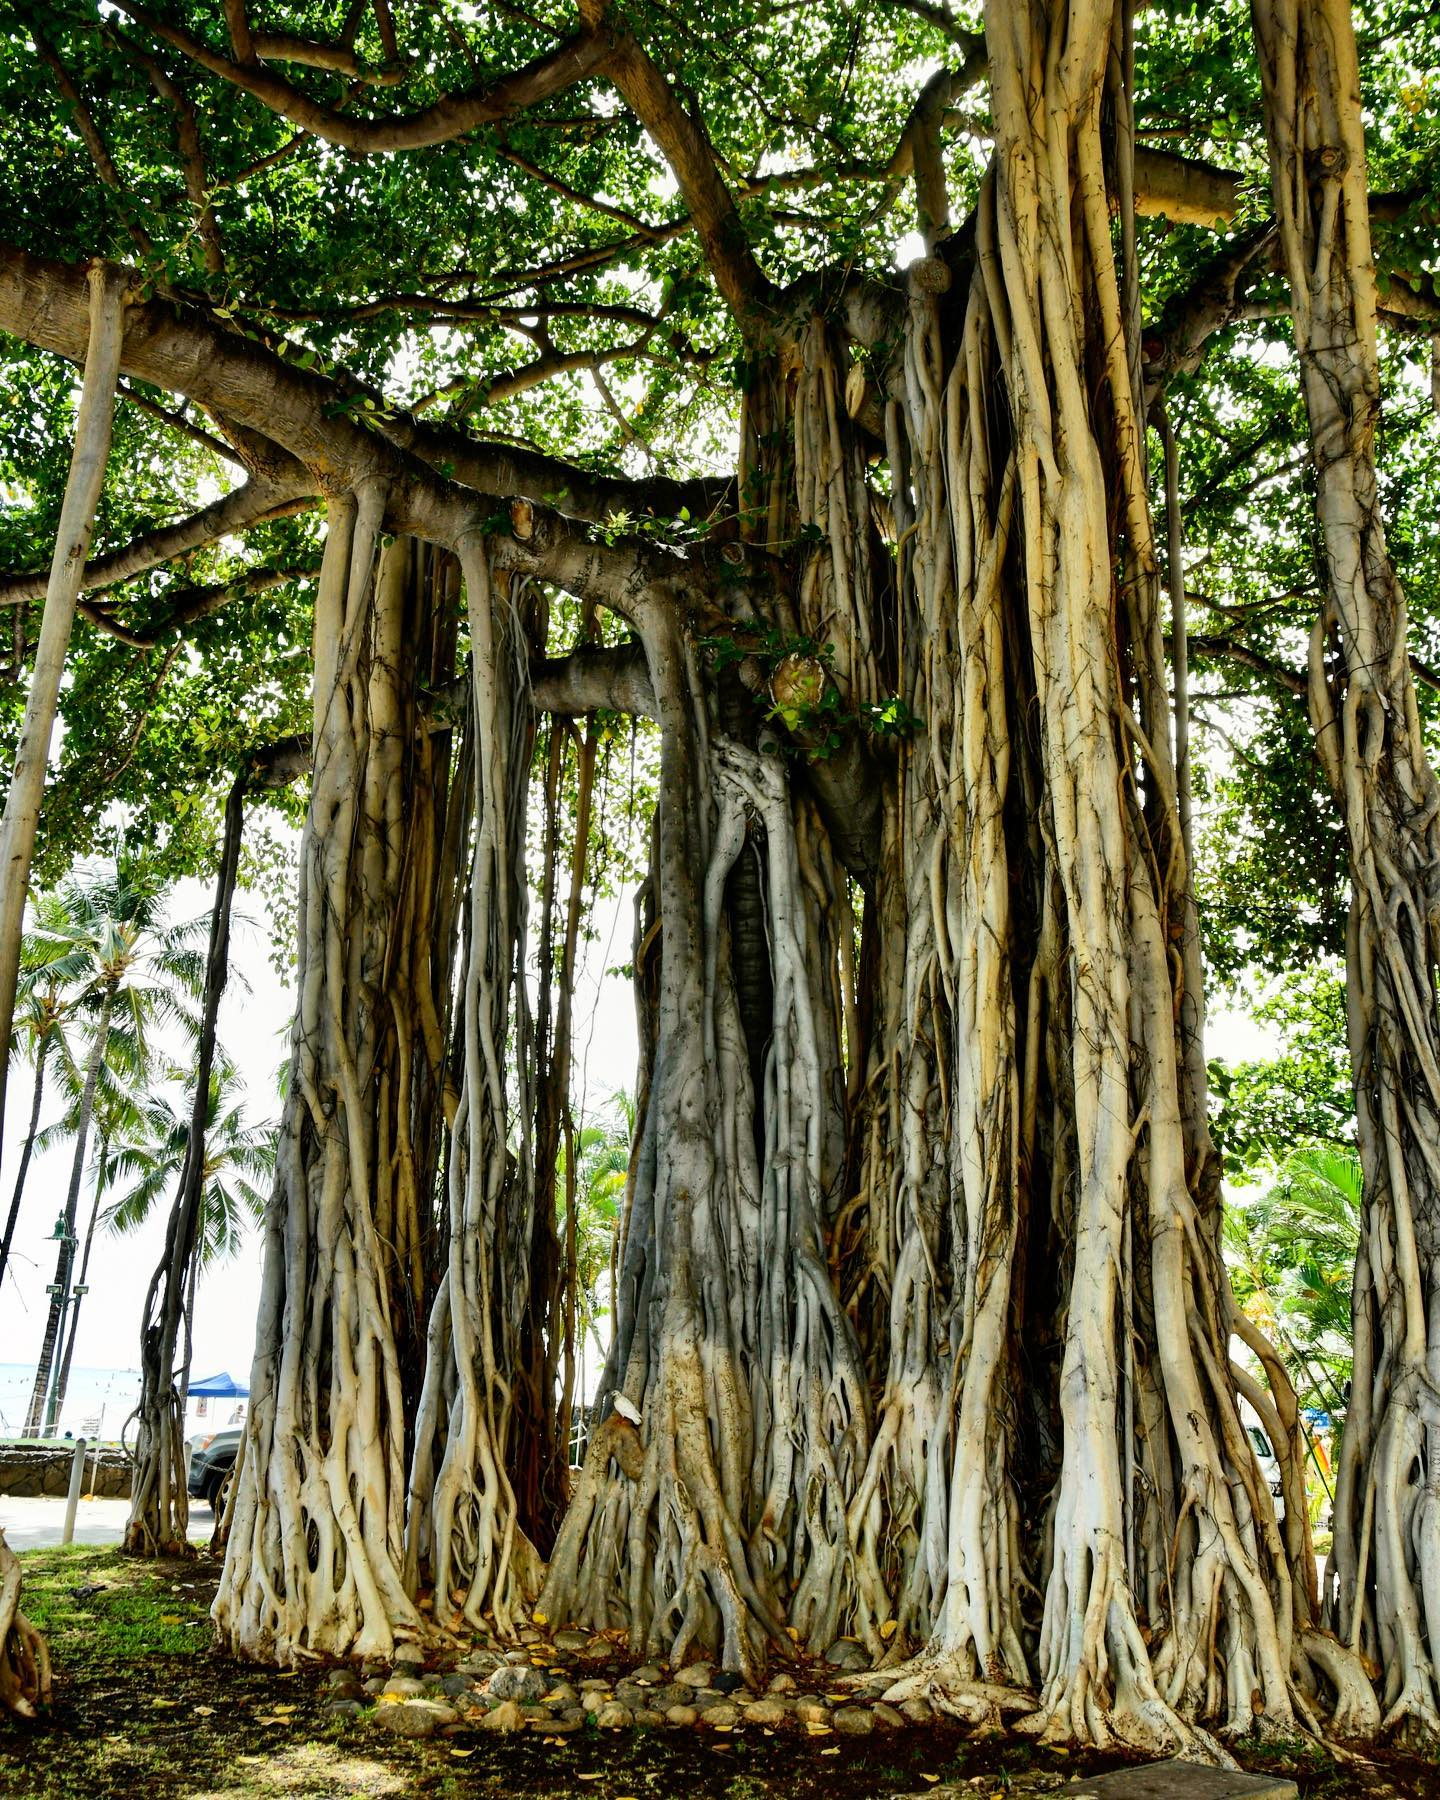 Banyan Tree Waikiki Beach, Honolulu, Oahu #usa🇺🇸 #usatravel #hawaii #hawaiilife #oahu #oahuhawaii #honolulu #honolulugram #nature #naturephotography #naturelovers #natur #banyantree #treephotography #traveltheusa #travelphotography #travelgram #travelpics #travelblogger #travelblog #usablogger #usablog #beautifulhawaii #hawaiinature #hawaiitravel #hawaiinature #waikikibeach #waikiki